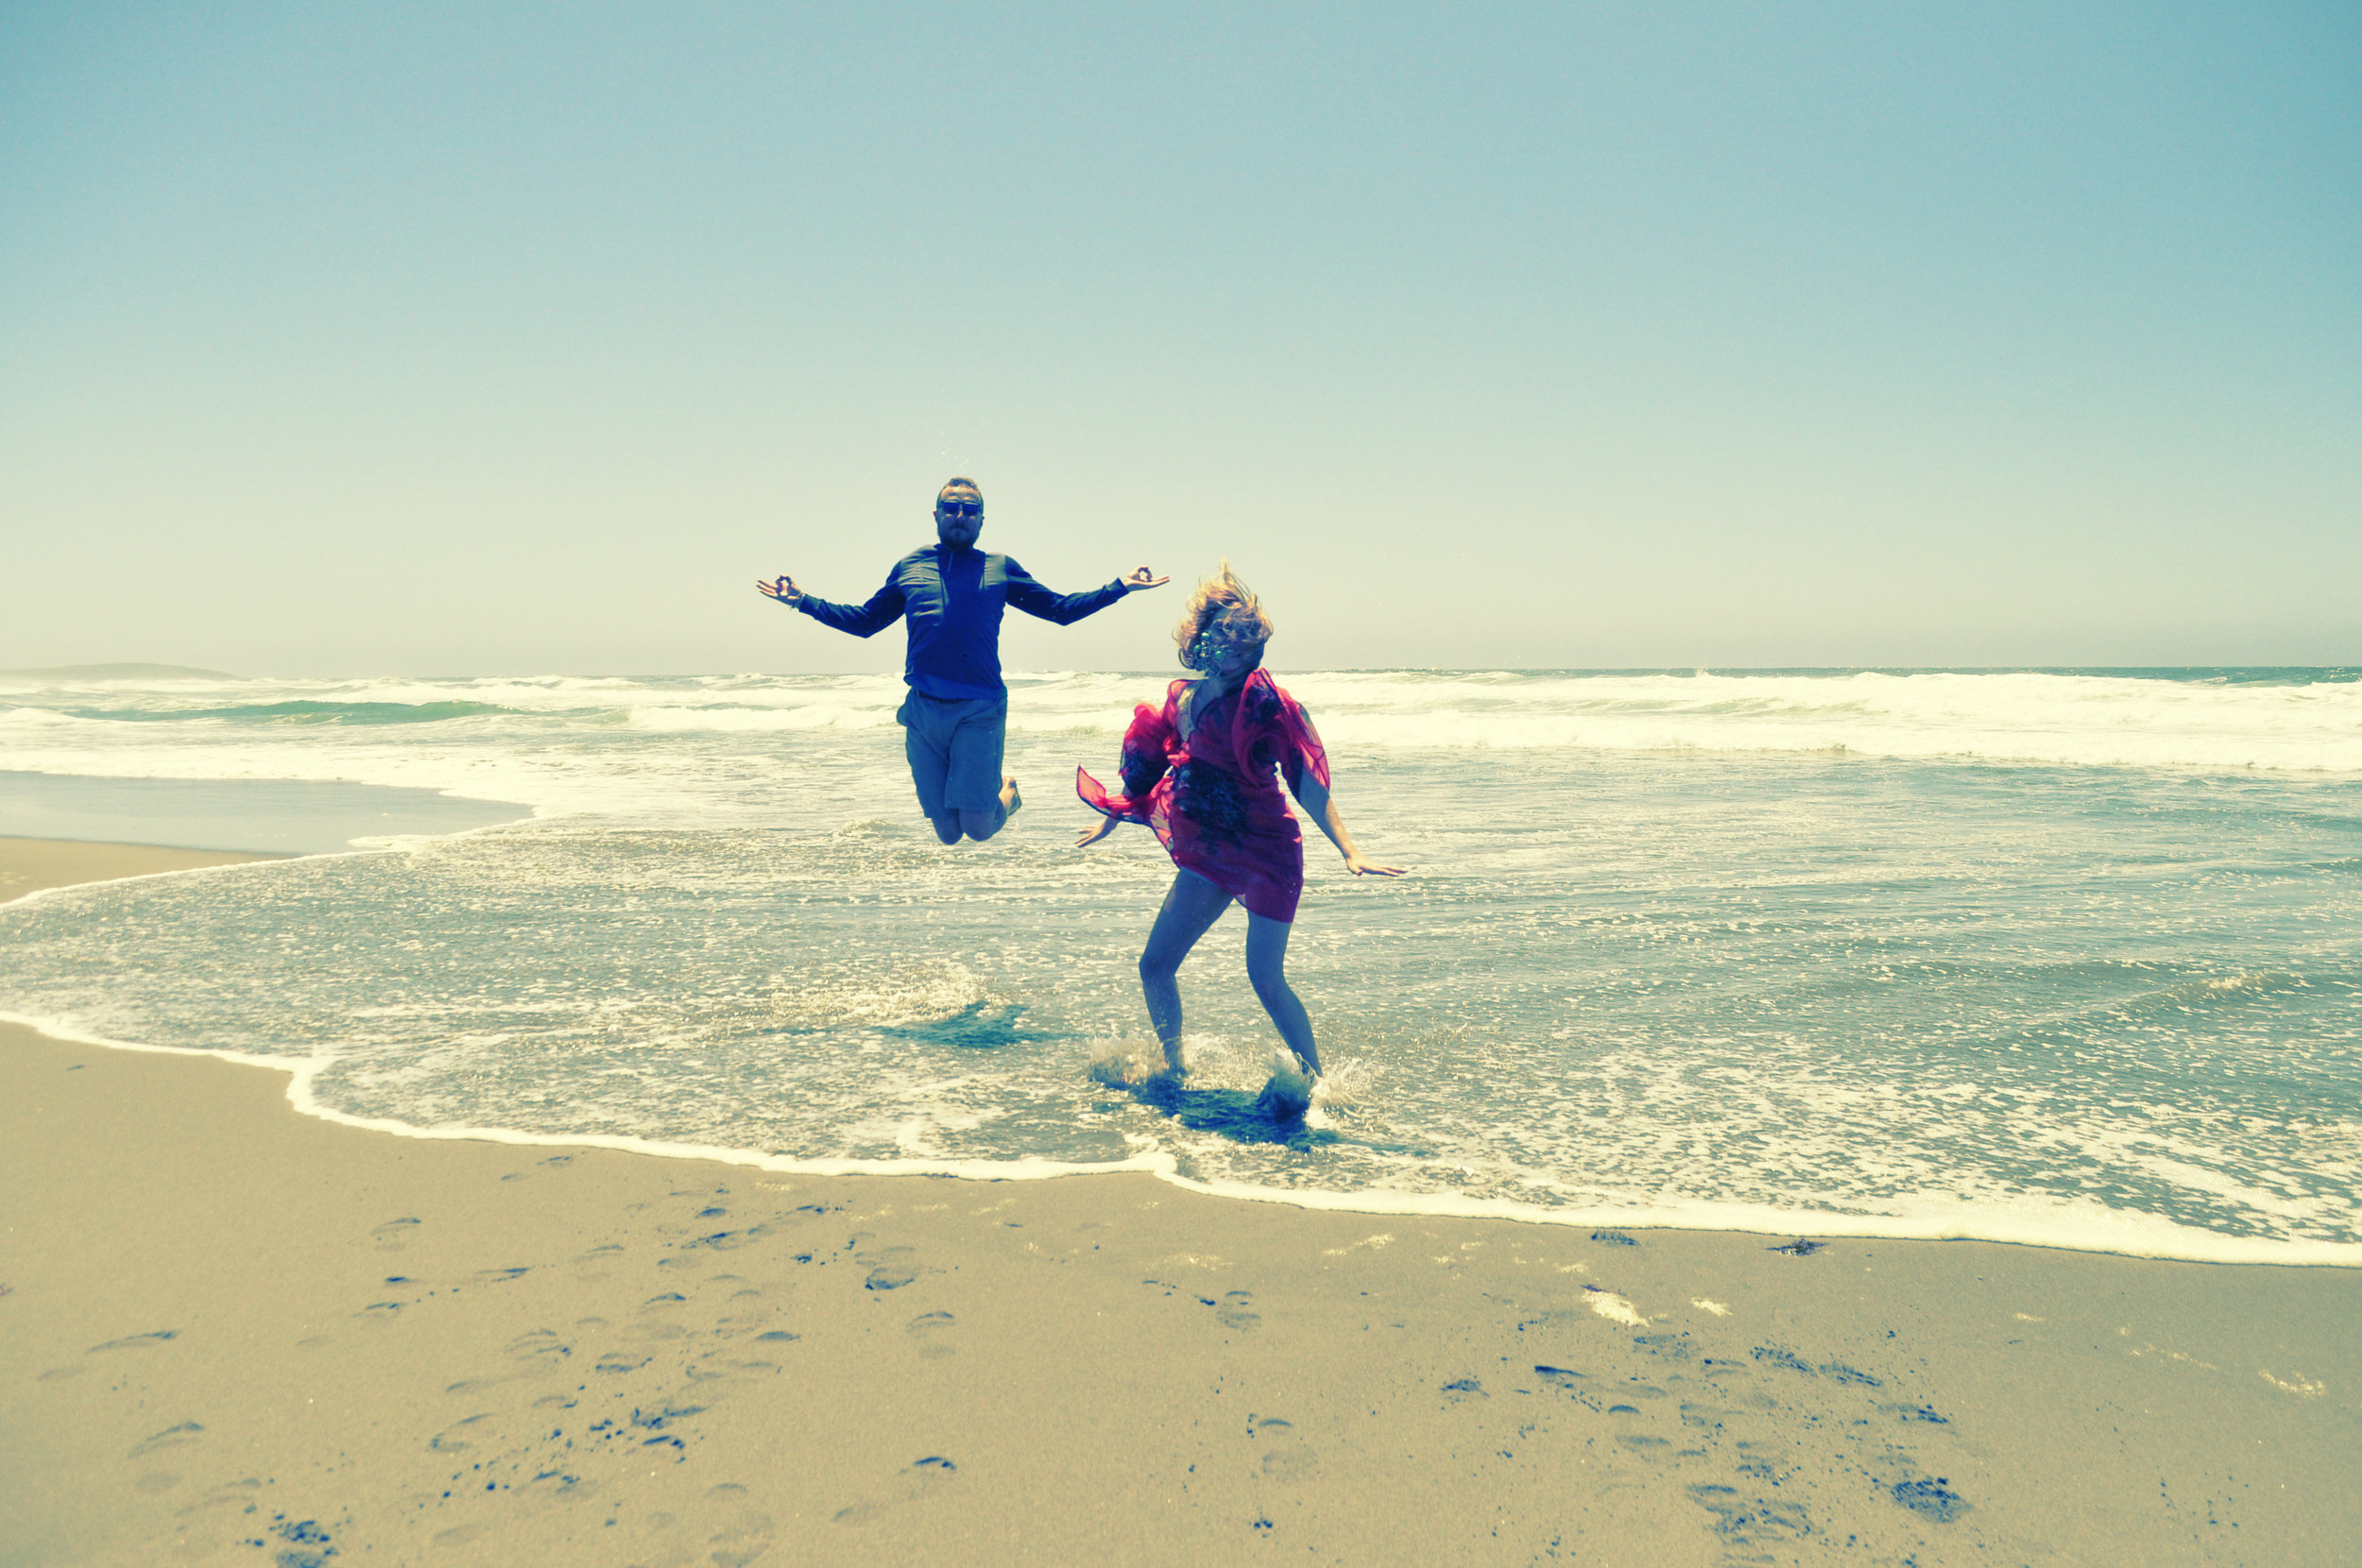 bodega bay, shore, jump